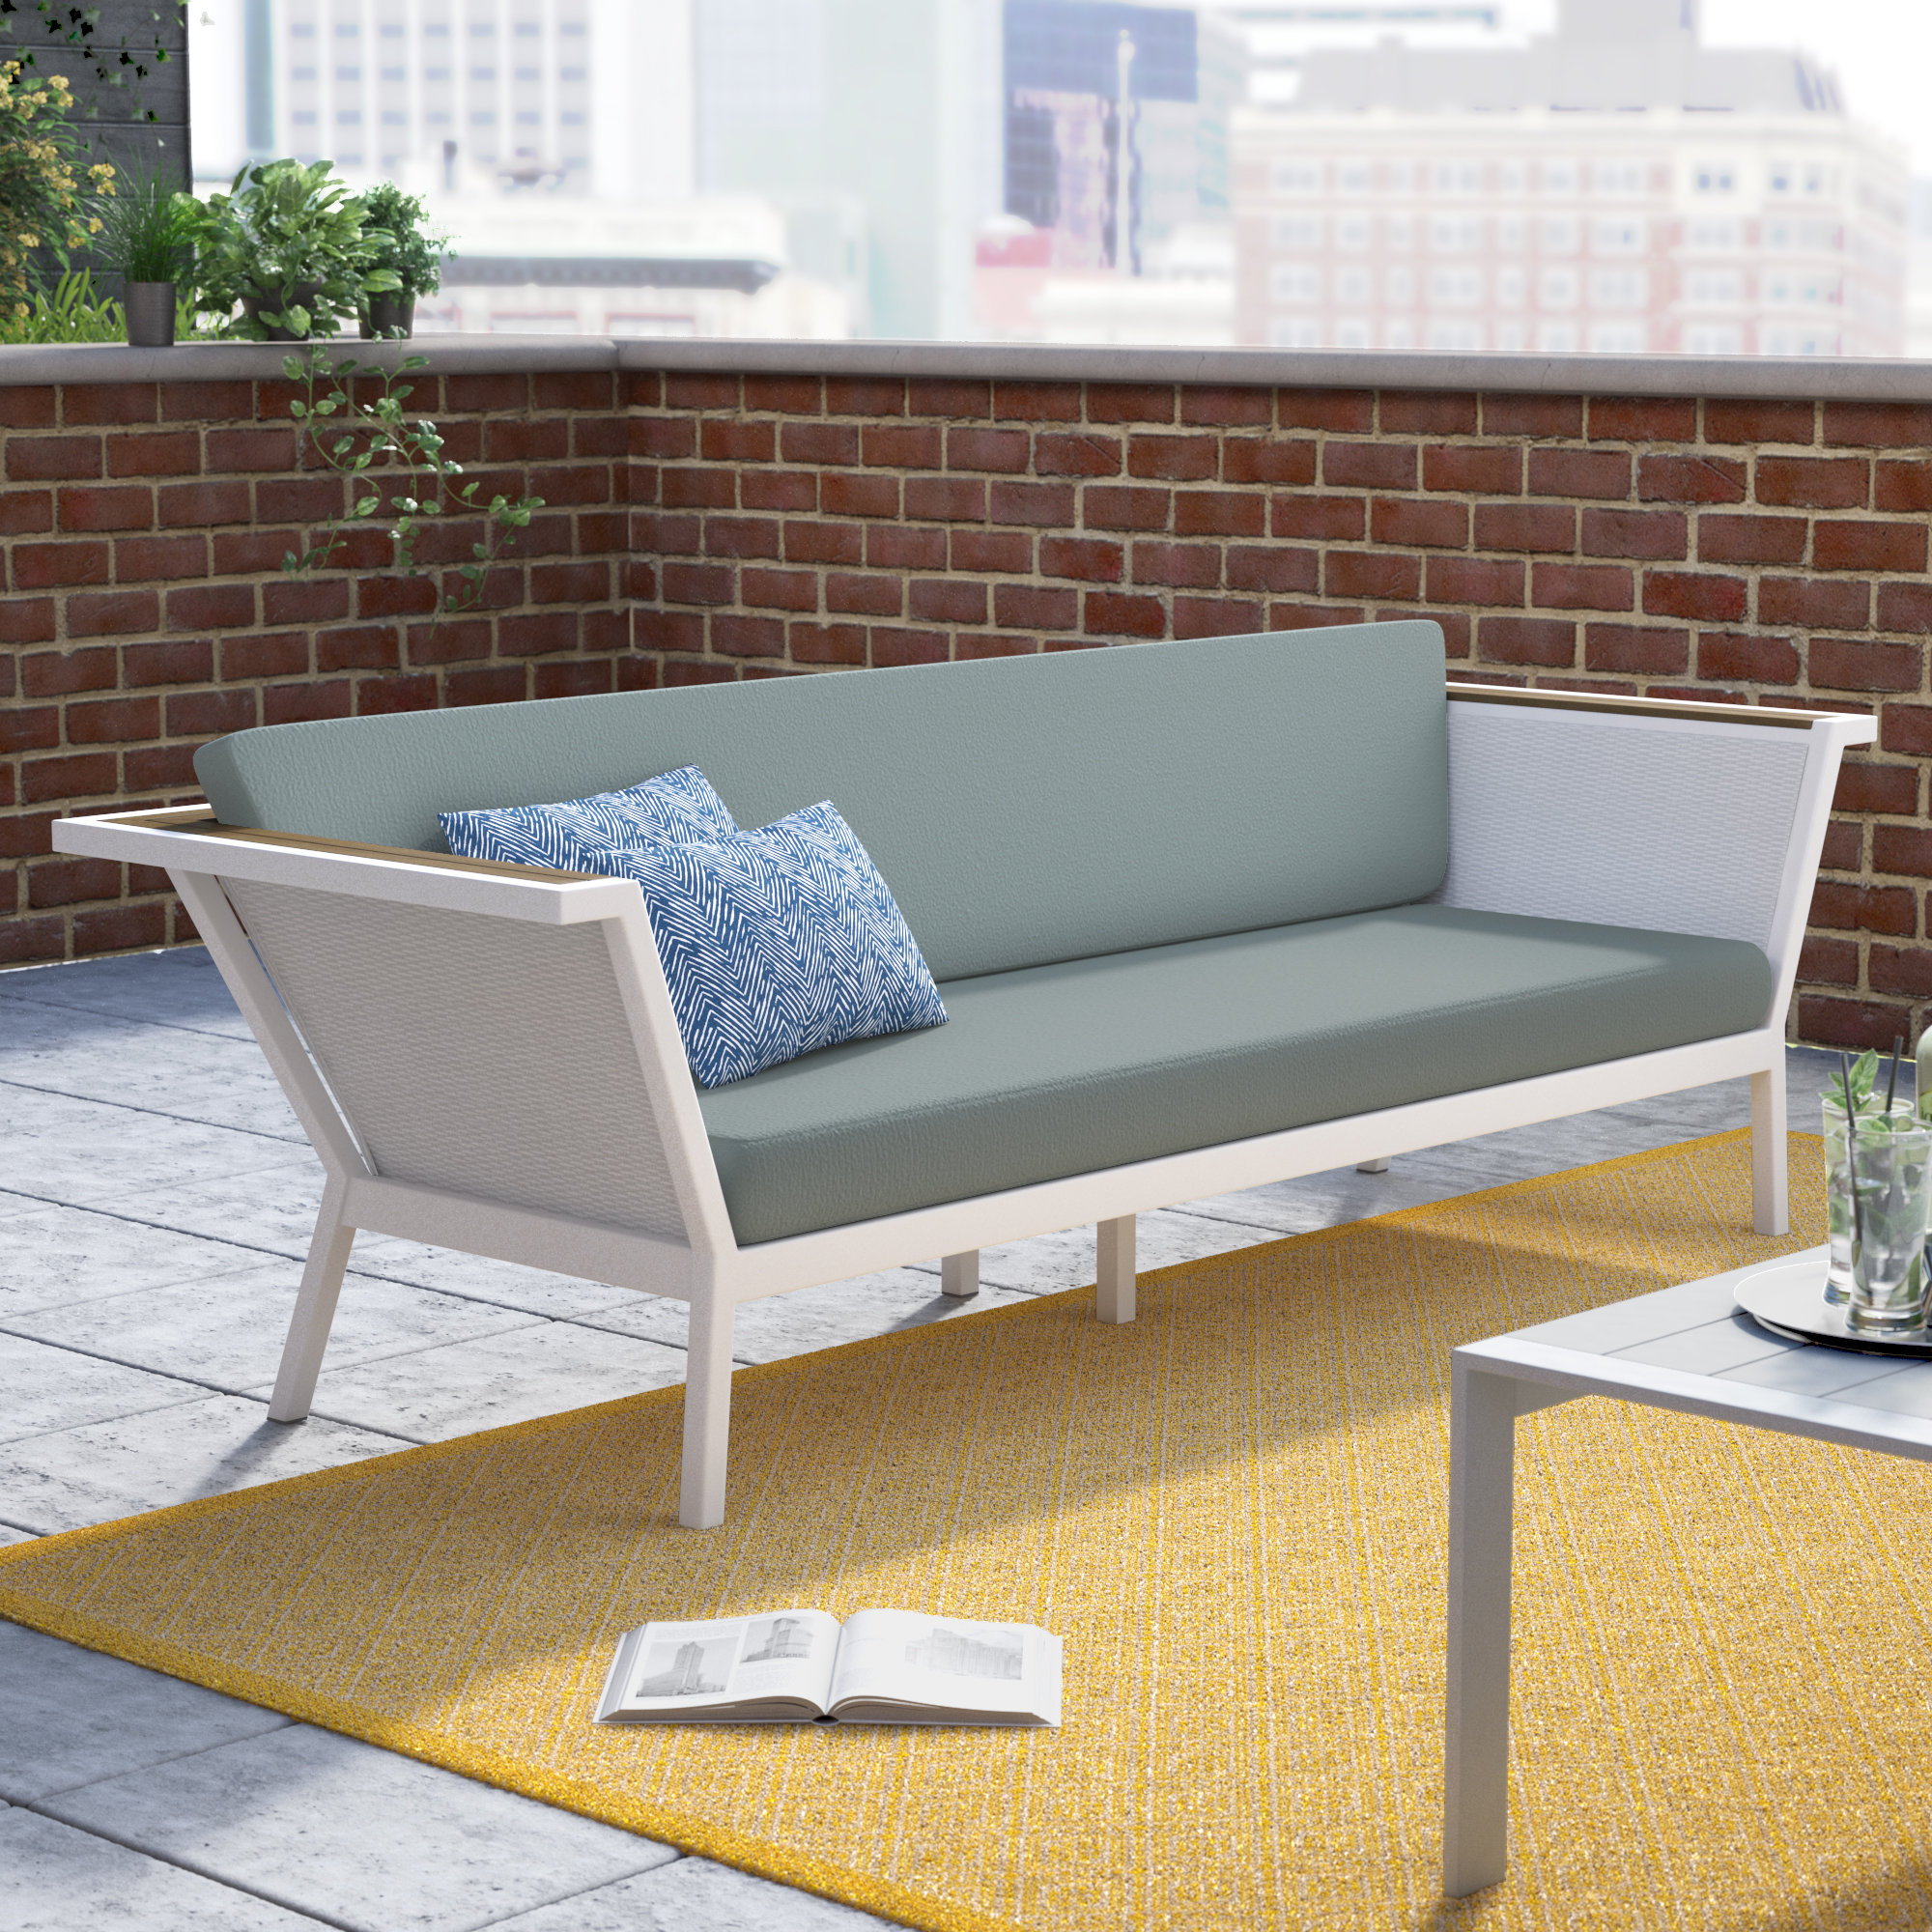 Most Popular Sylvania Outdoor Loveseats Inside Modern Metal Outdoor Loveseats (View 15 of 20)